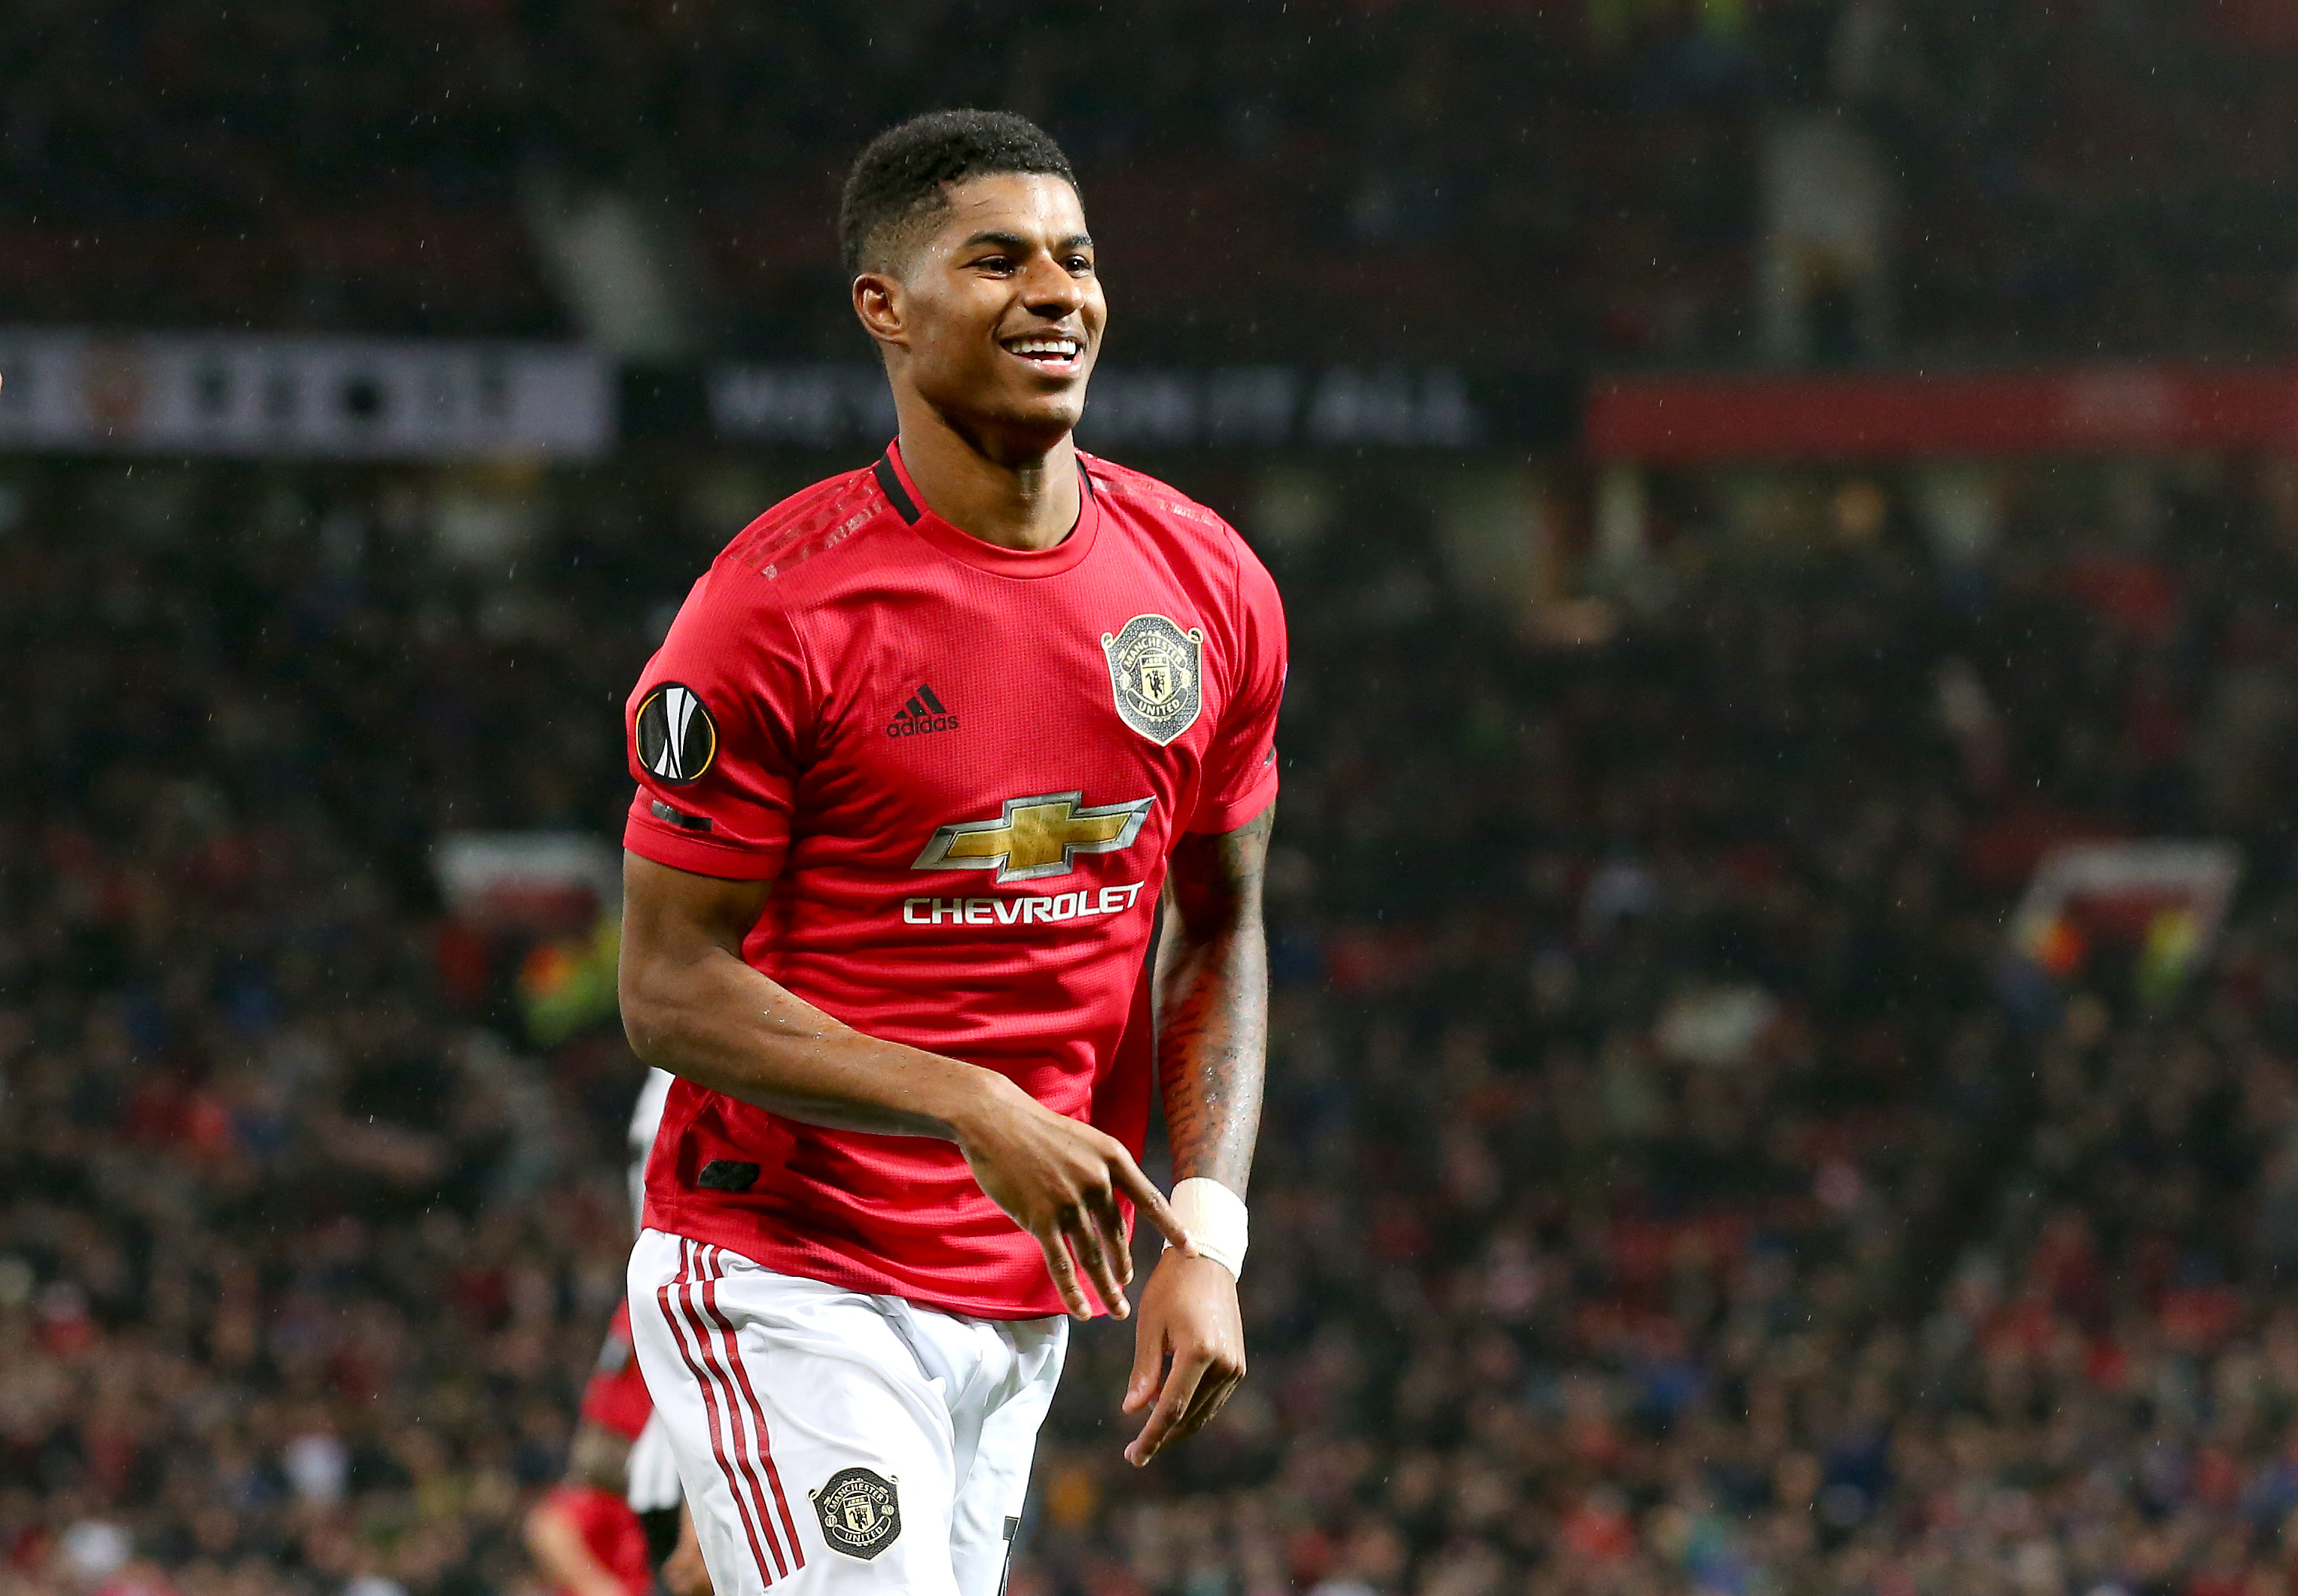 Marcus Rashford to be awarded honorary doctorate for forcing government U-turn